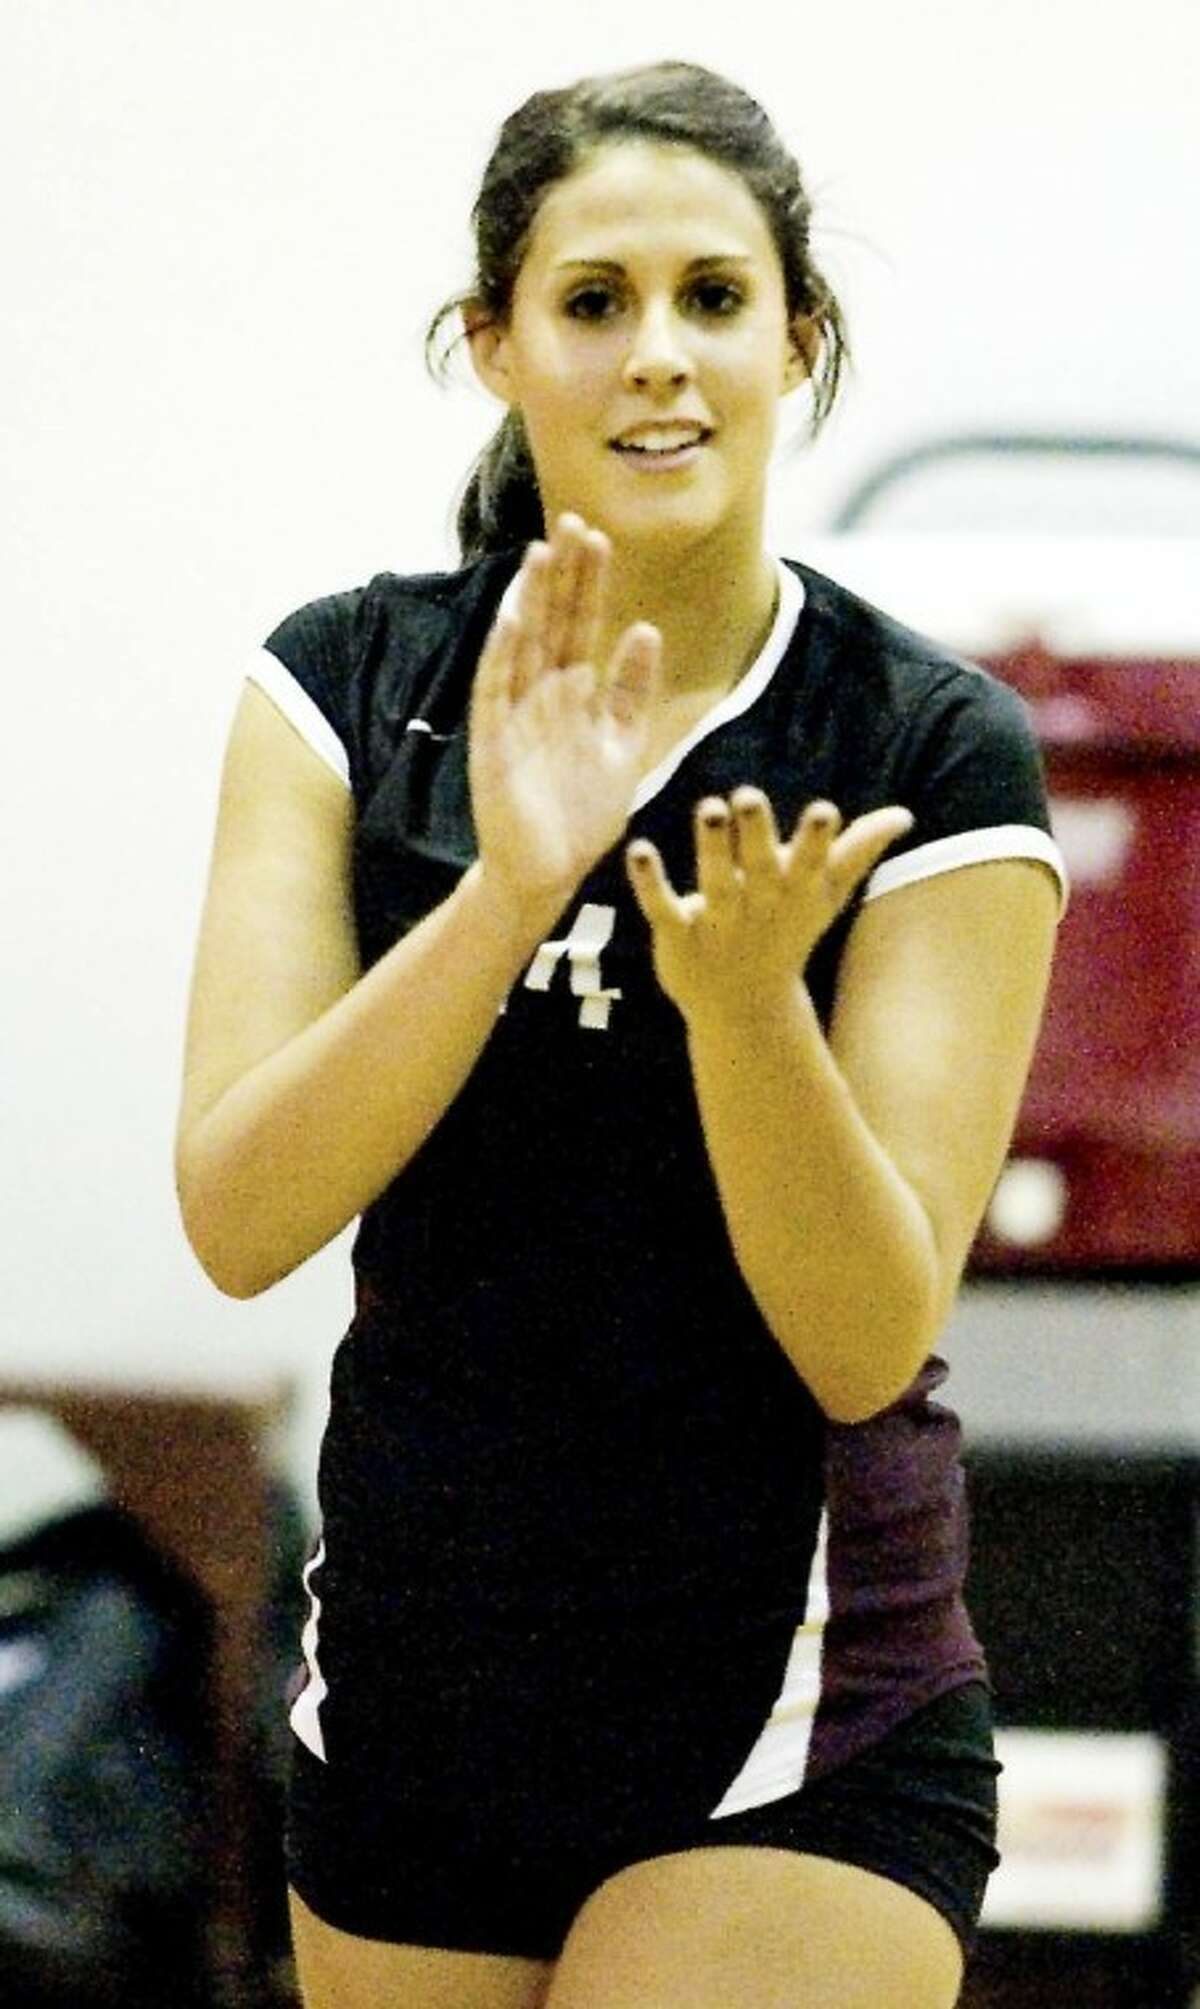 Malorie Pardo of Pearland High School will compete Feb. 5 in the GHVCA all-star game at PHS.